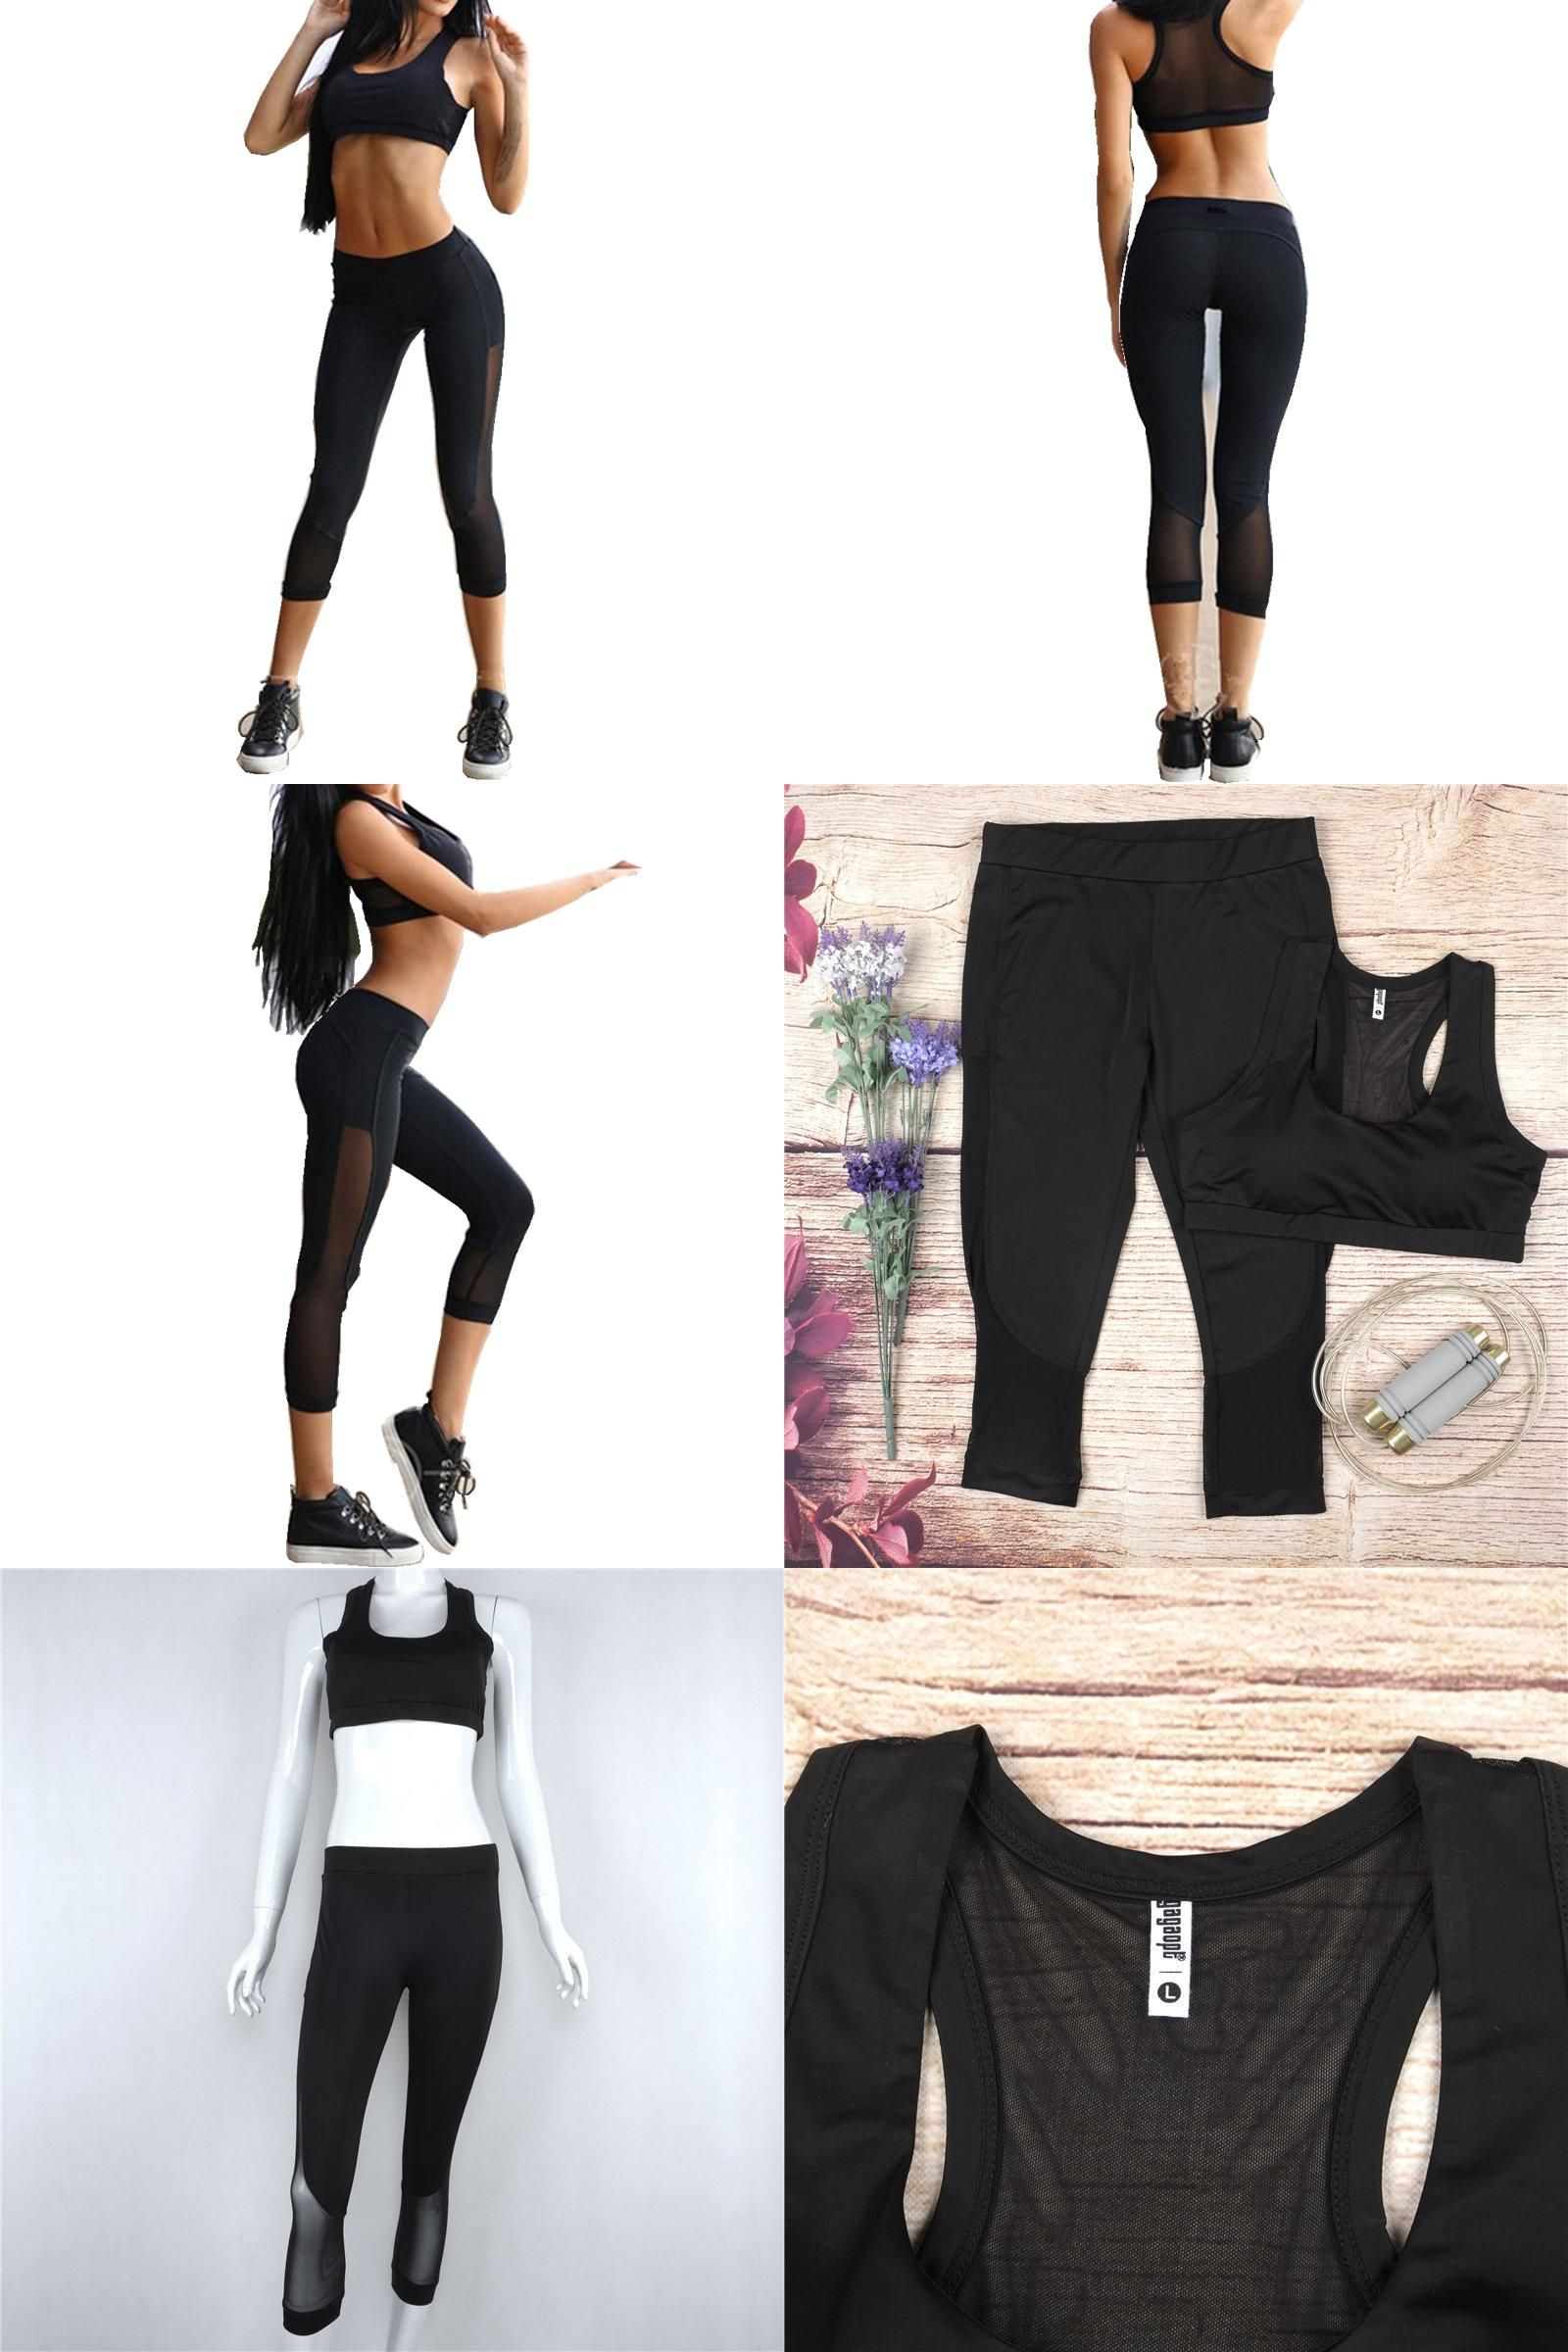 Women s yoga sets sport suit workout clothes female fitness sports -  Visit To Buy Women Yoga Sets Bra Pants Fitness Workout Clothing And Women S